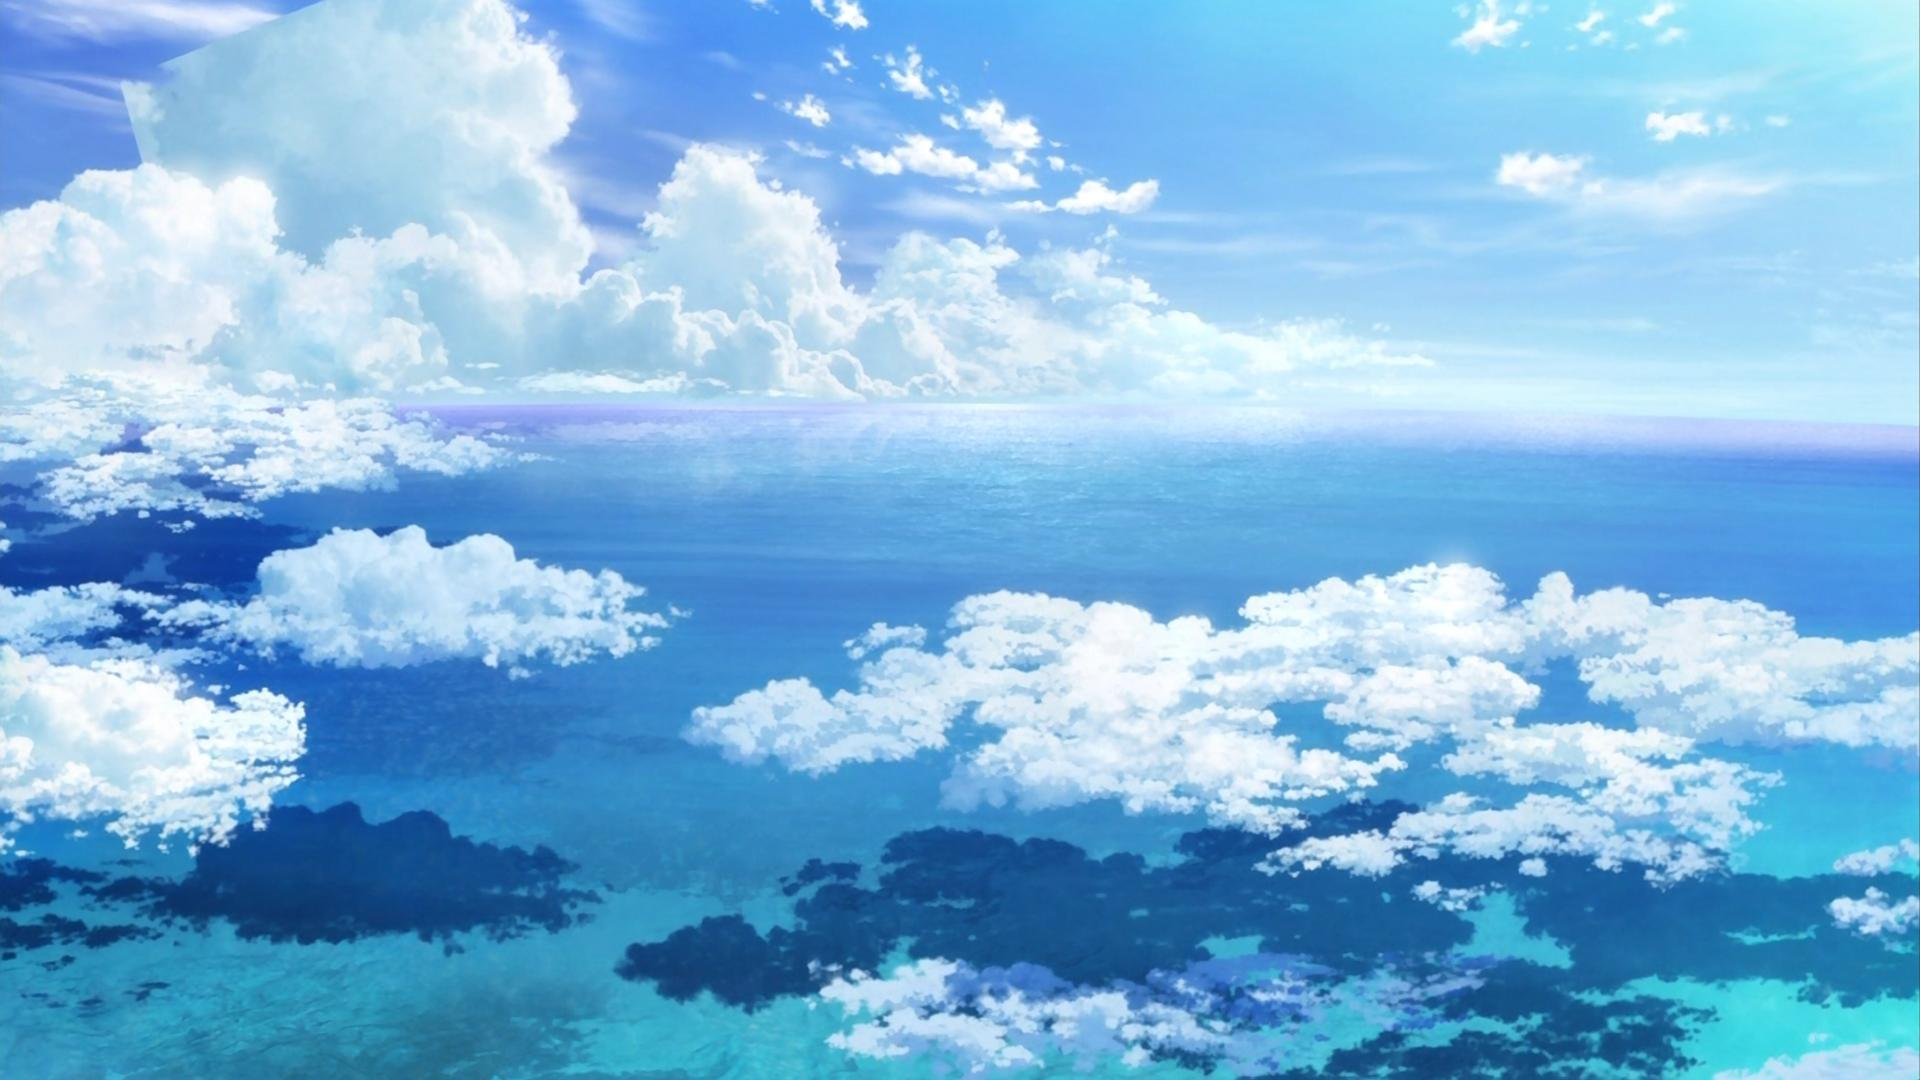 Skyscape Wallpaper